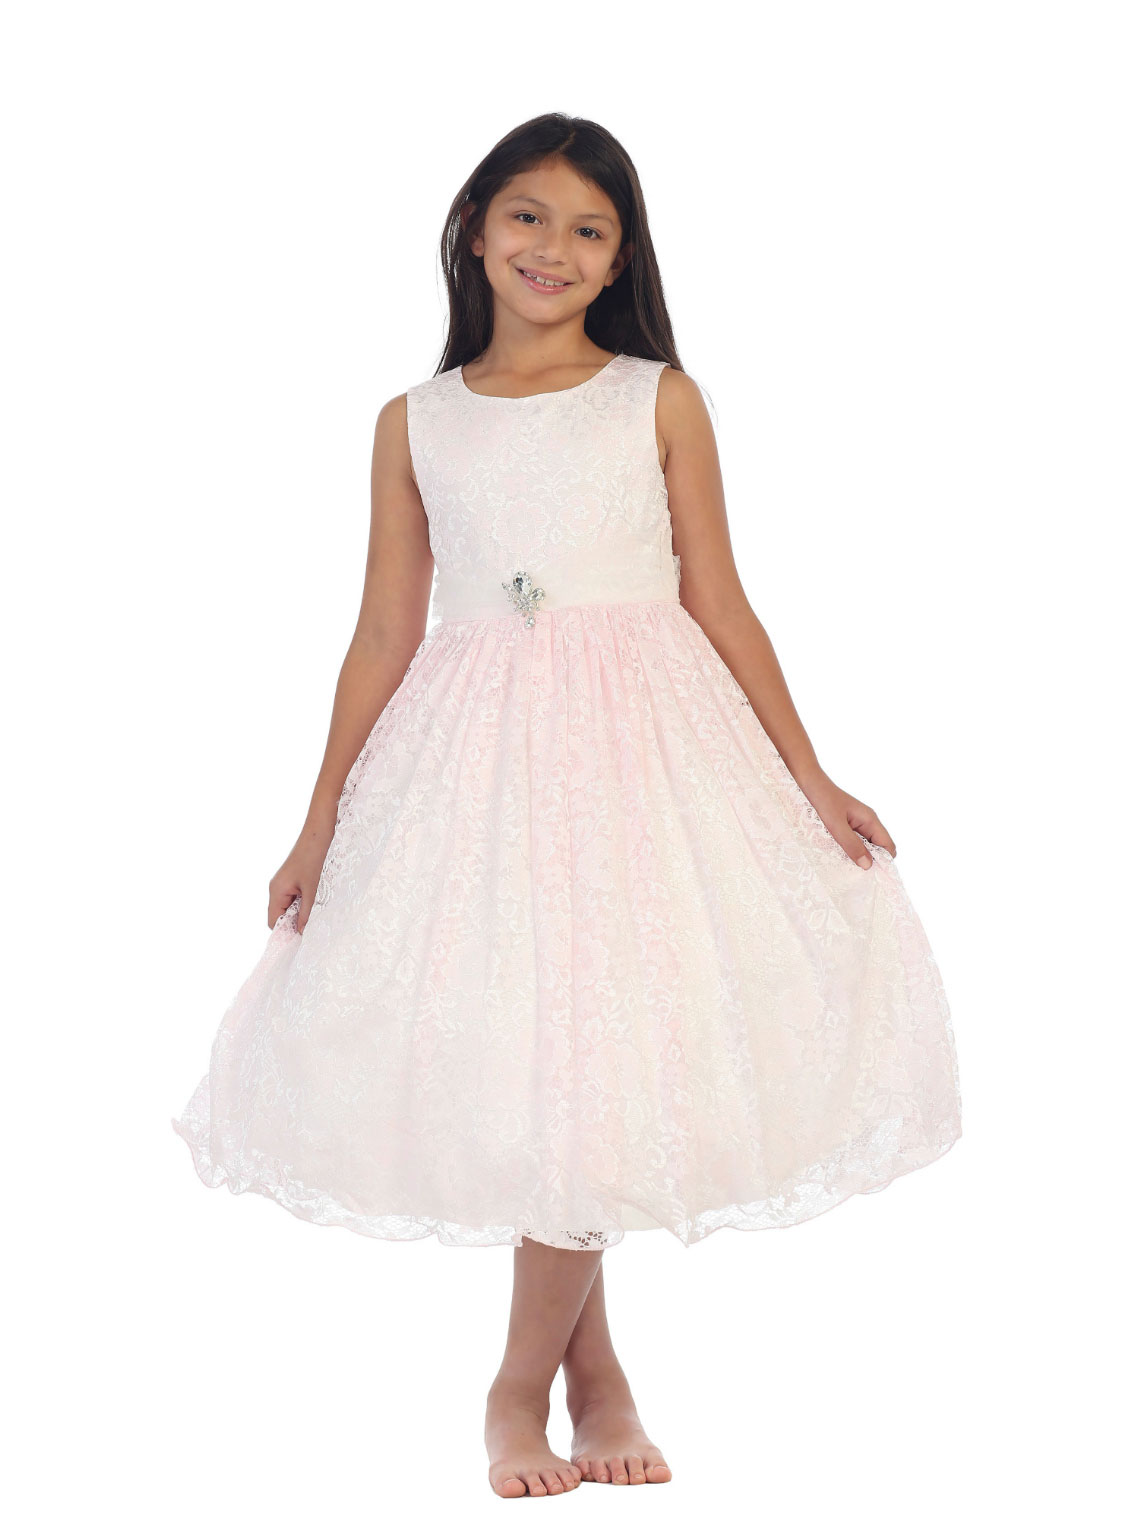 TT 5694P Girls Dress Style 5694 PINK Sleeveless Floral Lace Dress with Br